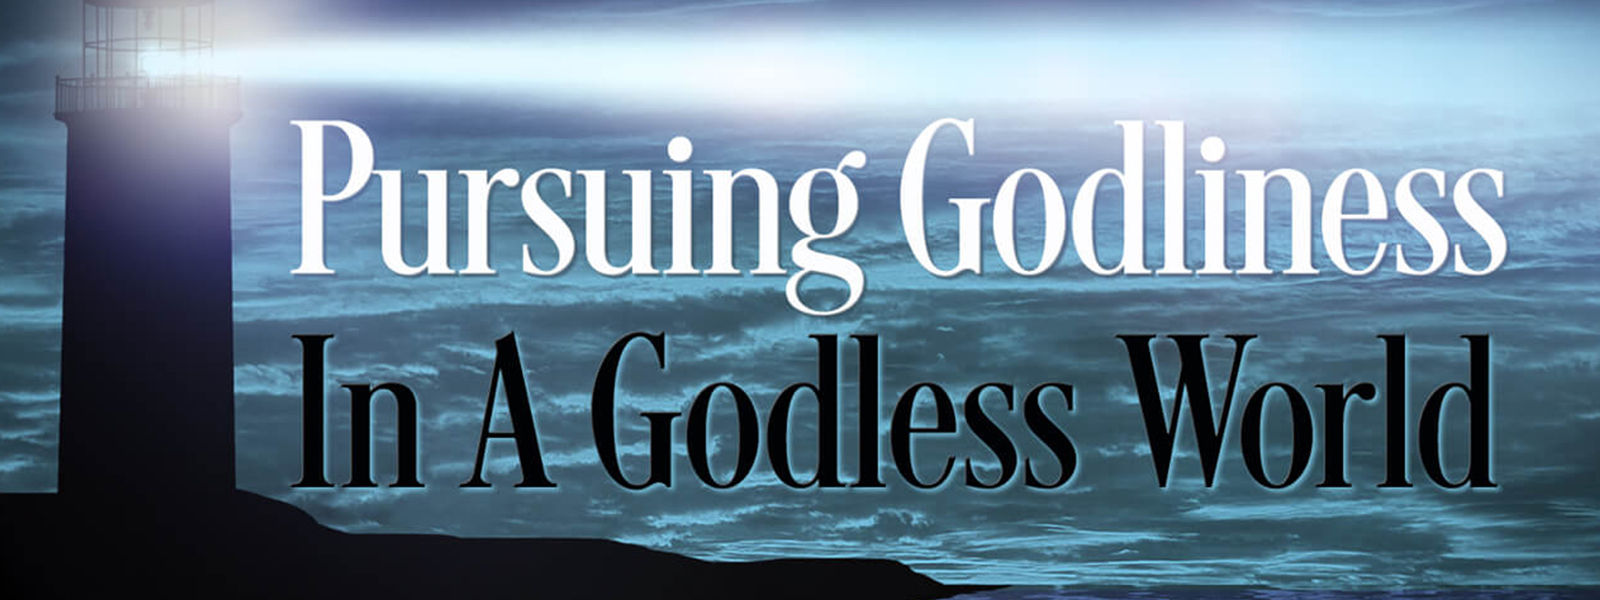 Pursuing Godliness in a Godless World